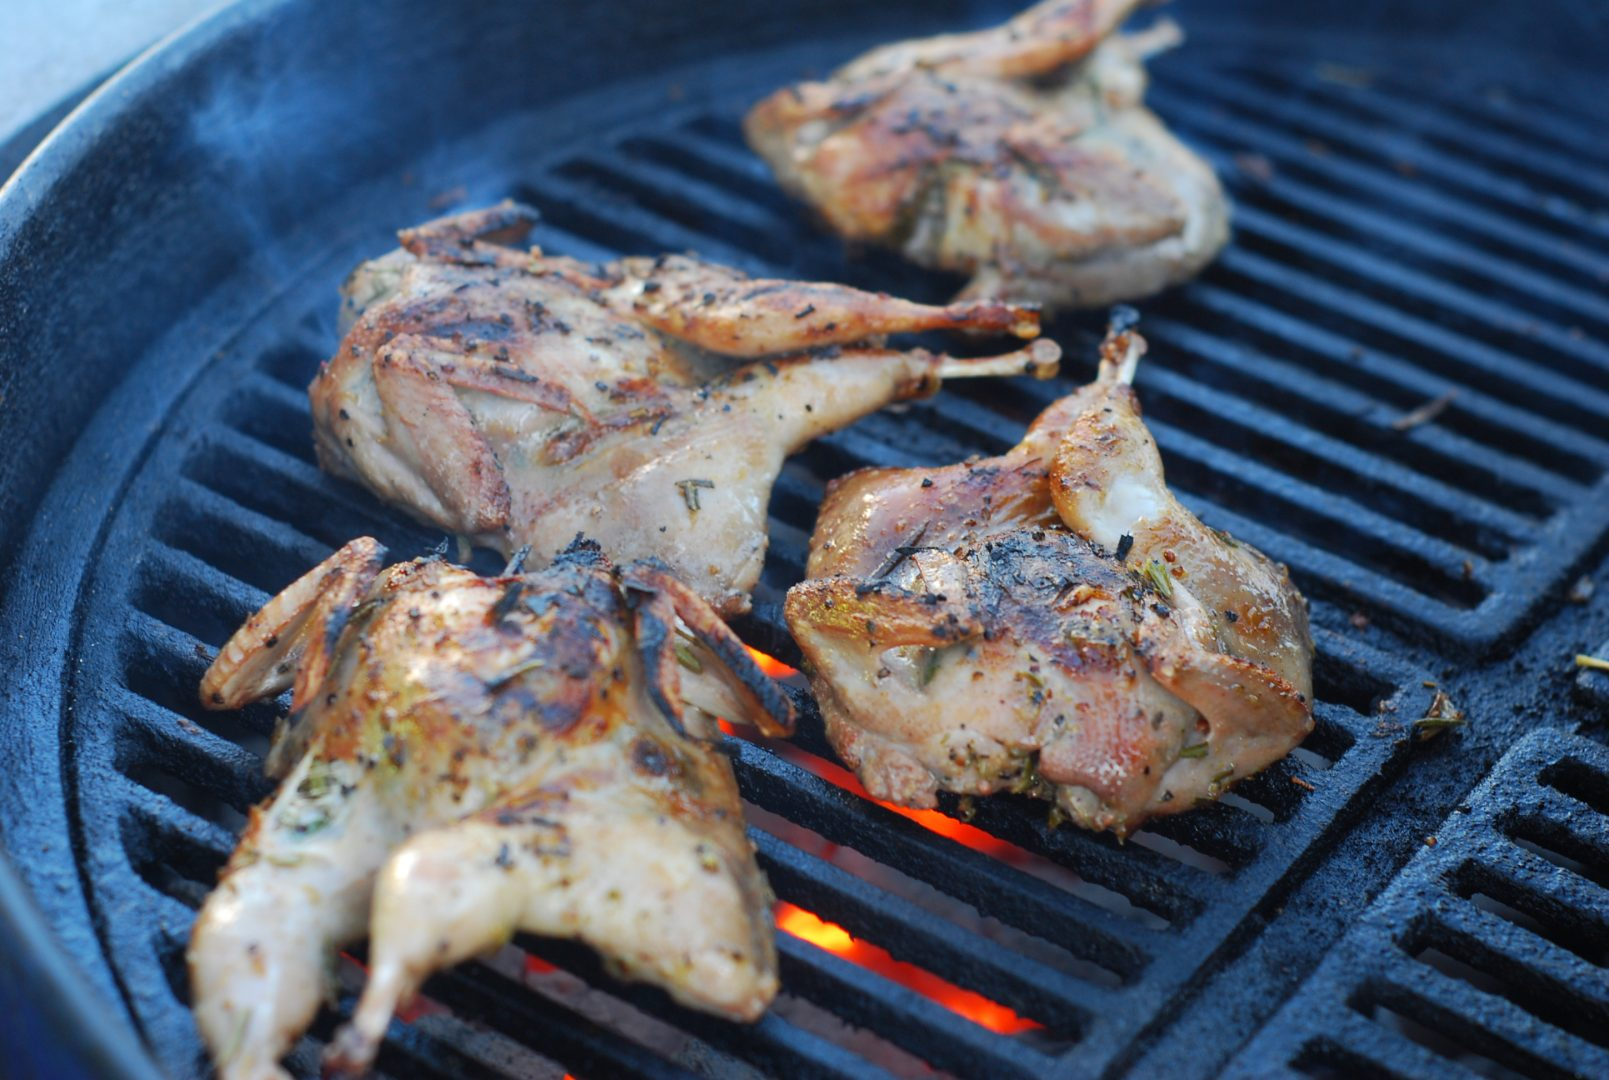 Grill the quail 6-8 minutes per side or until a thermapen reads 170 degrees on the internal temp.